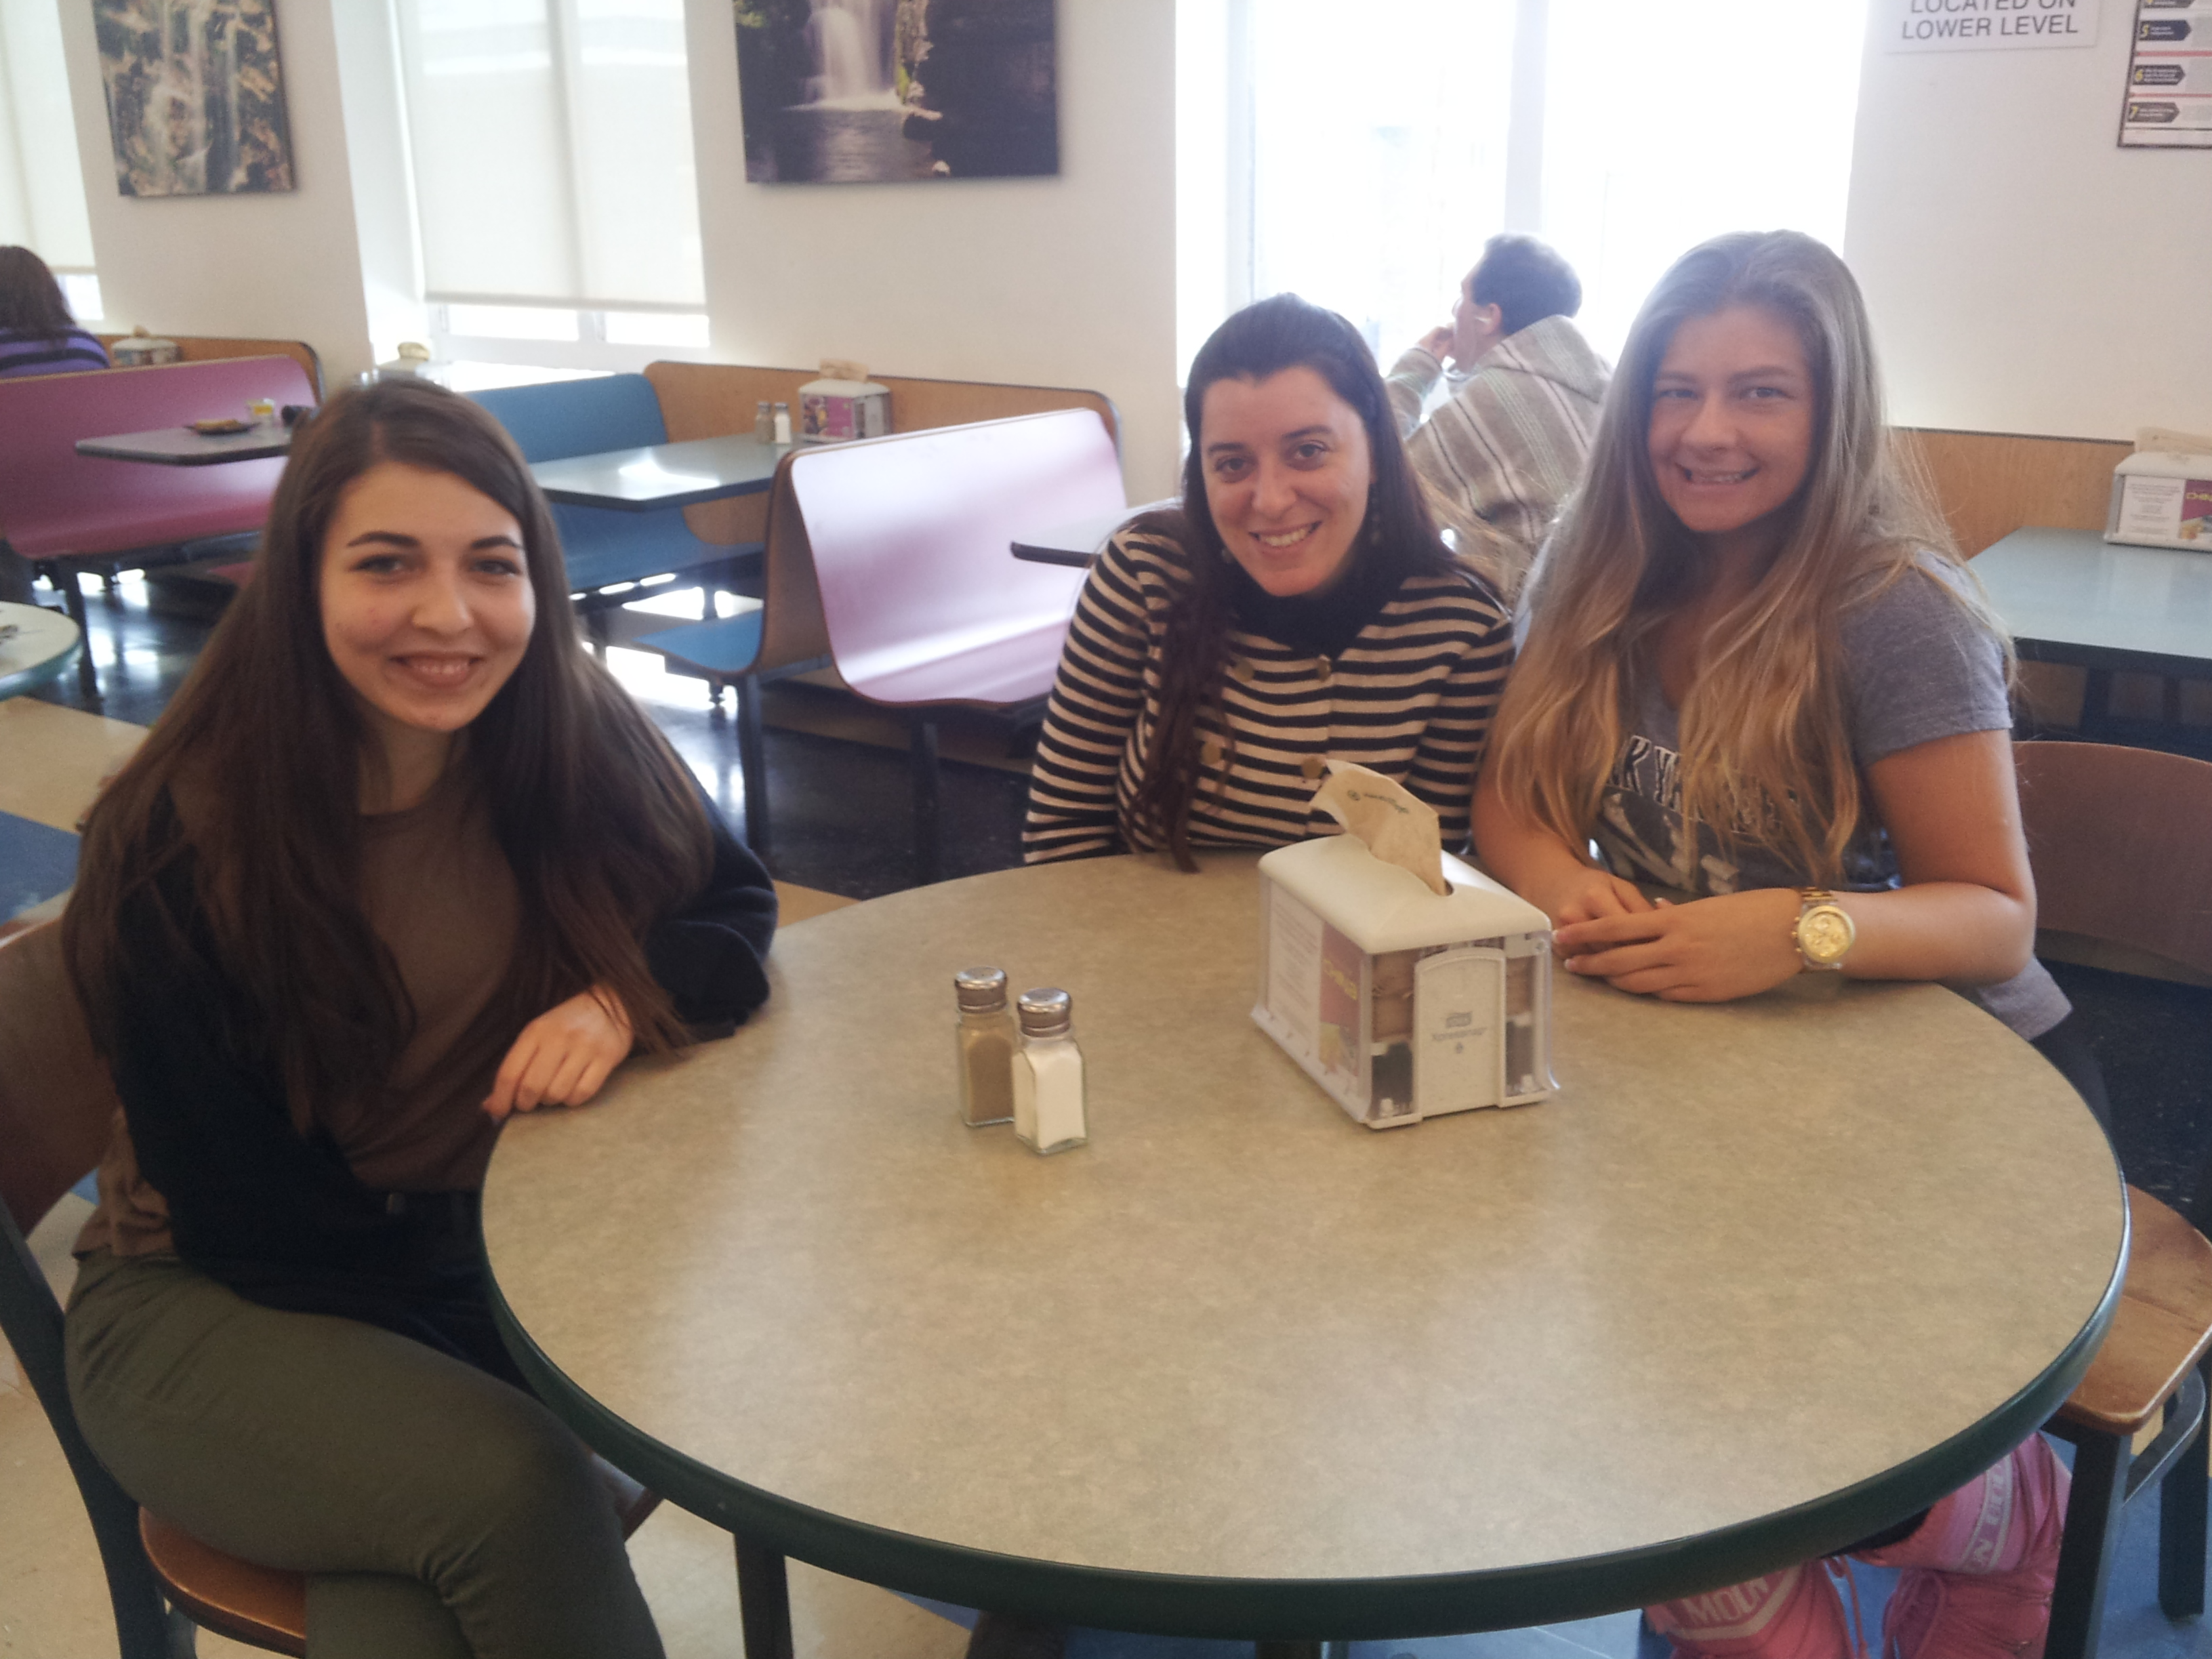 Third-year education majors, Su Basdemir, Tugba Aldanmaz and Elif Yilmaz from Middle East Technical University often meet for lunch together in Hasbrouck dining hall. Photo by Kelly Fay,